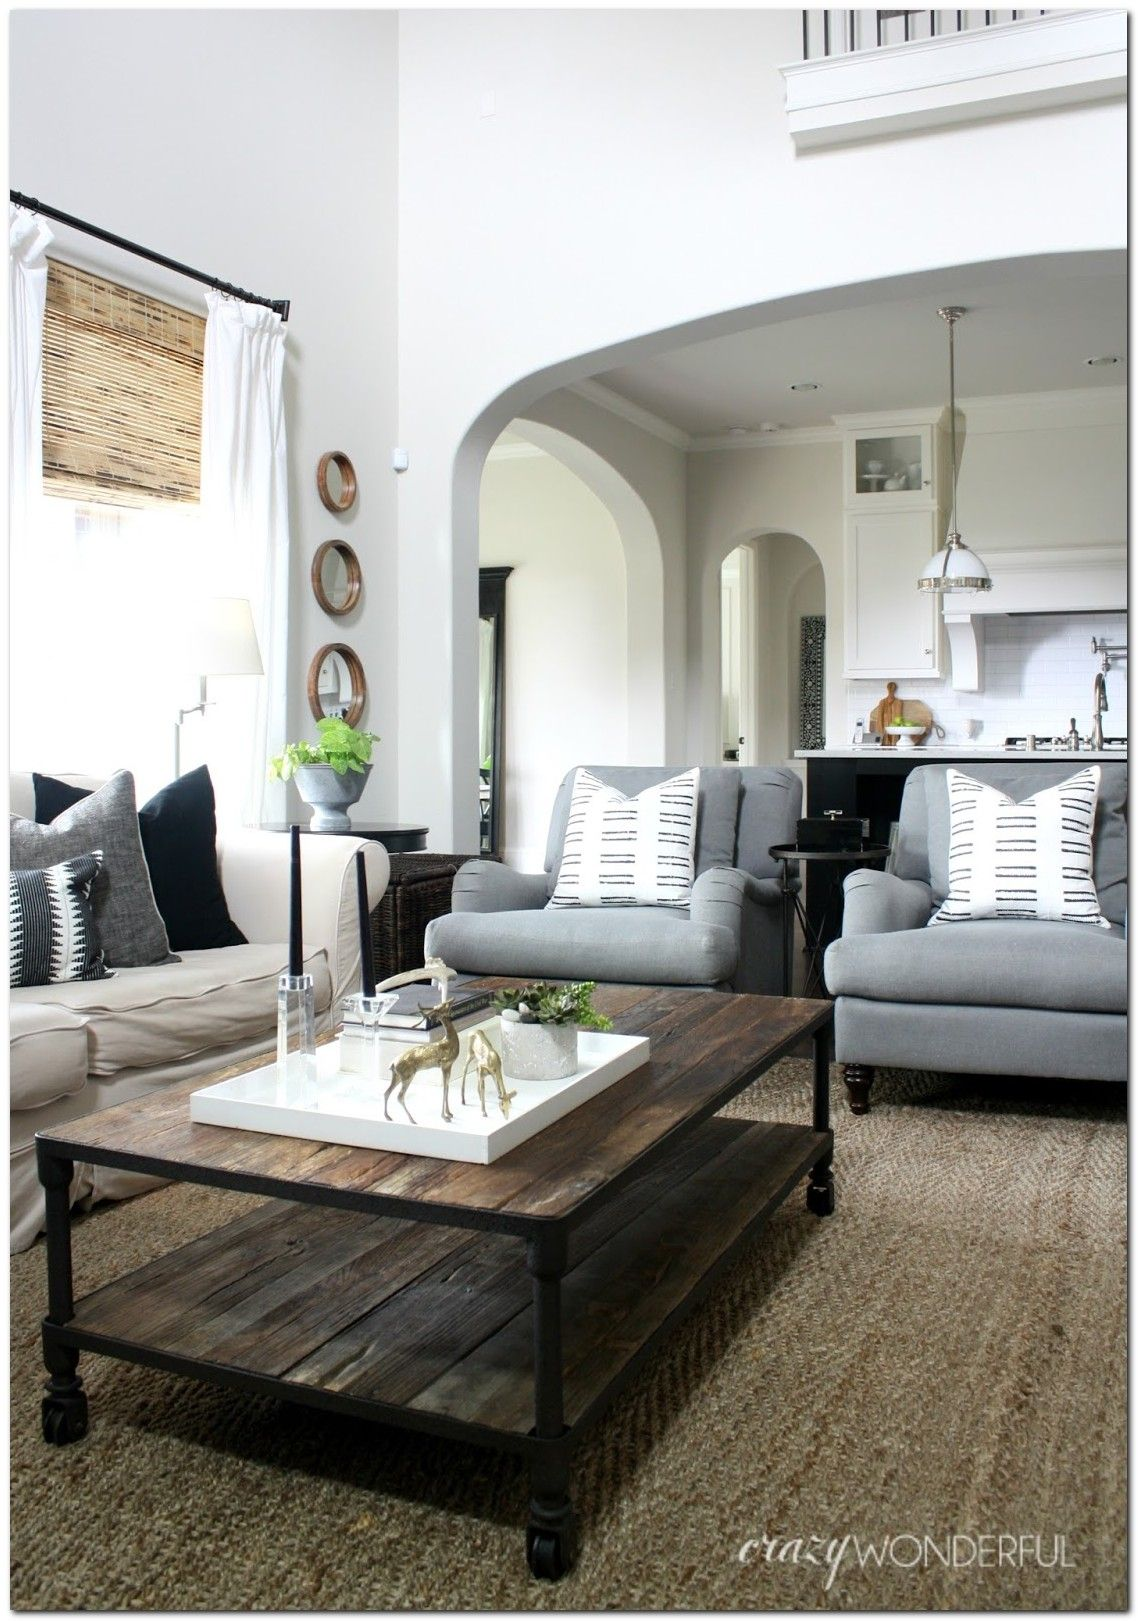 50 Mudcloth Pillows Ideas For Make Your Living Room Look Cozy